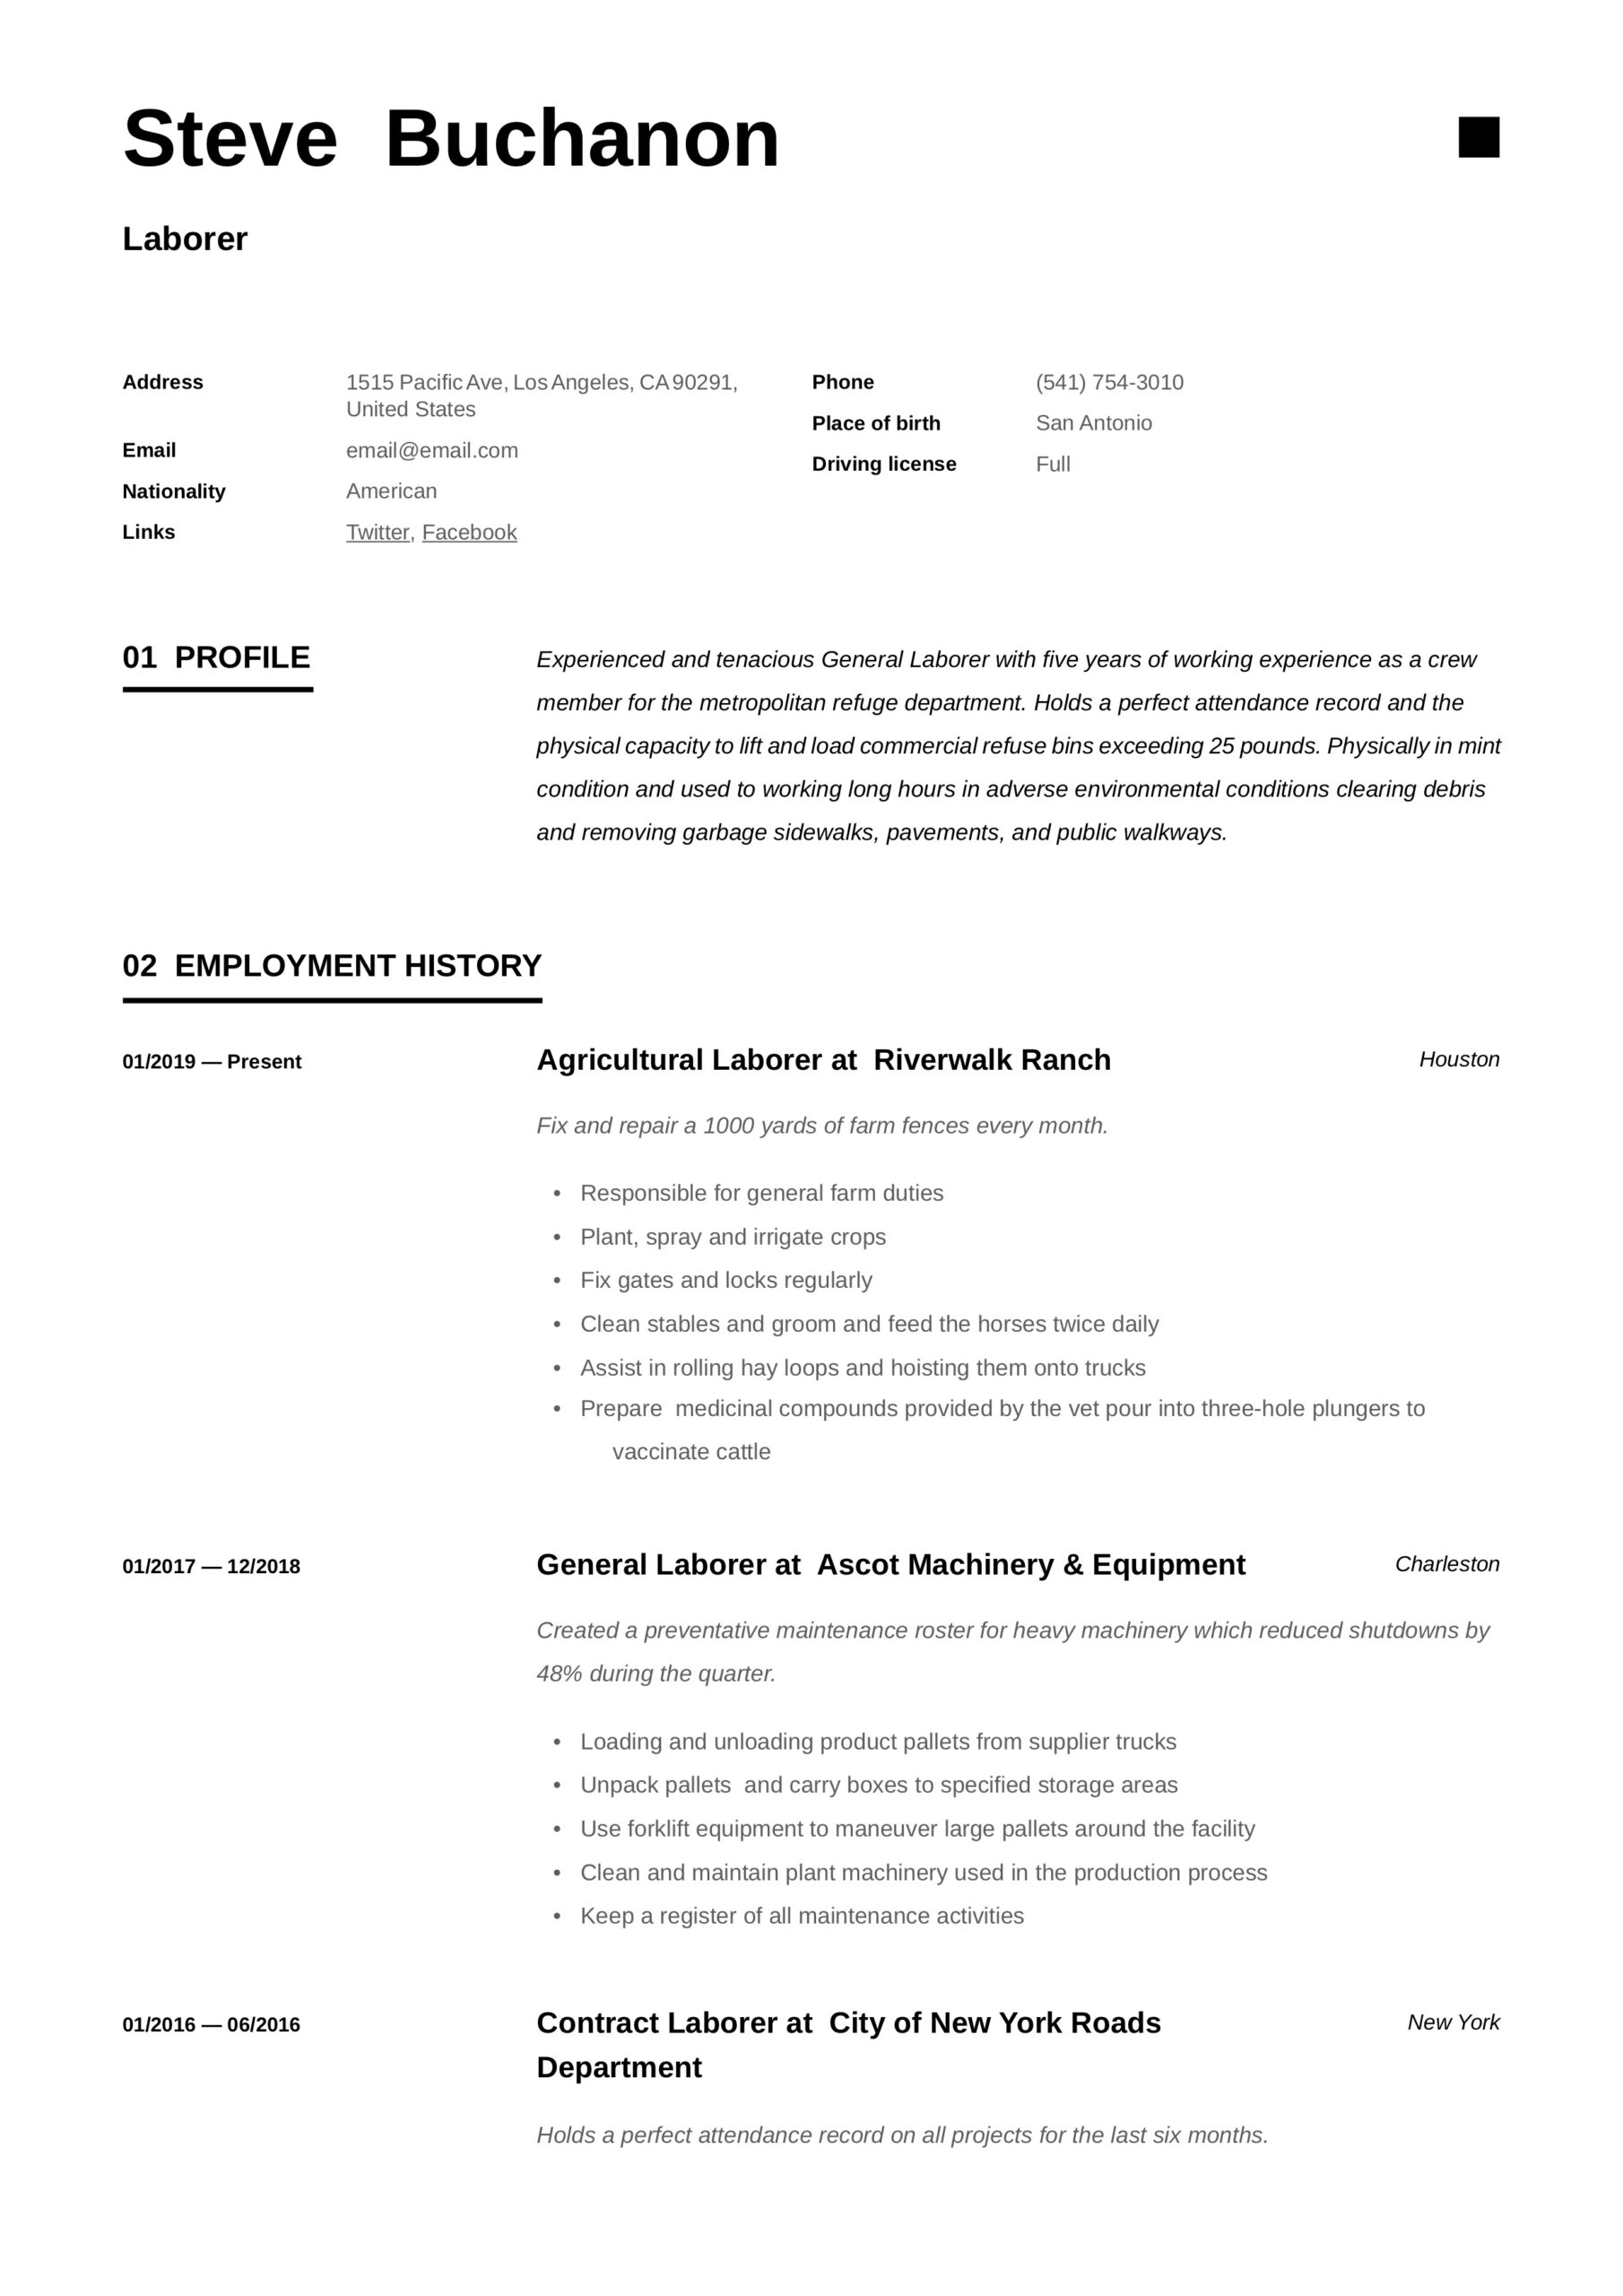 general laborer resume writing guide free templates labor summary example for Resume General Labor Resume Summary Example